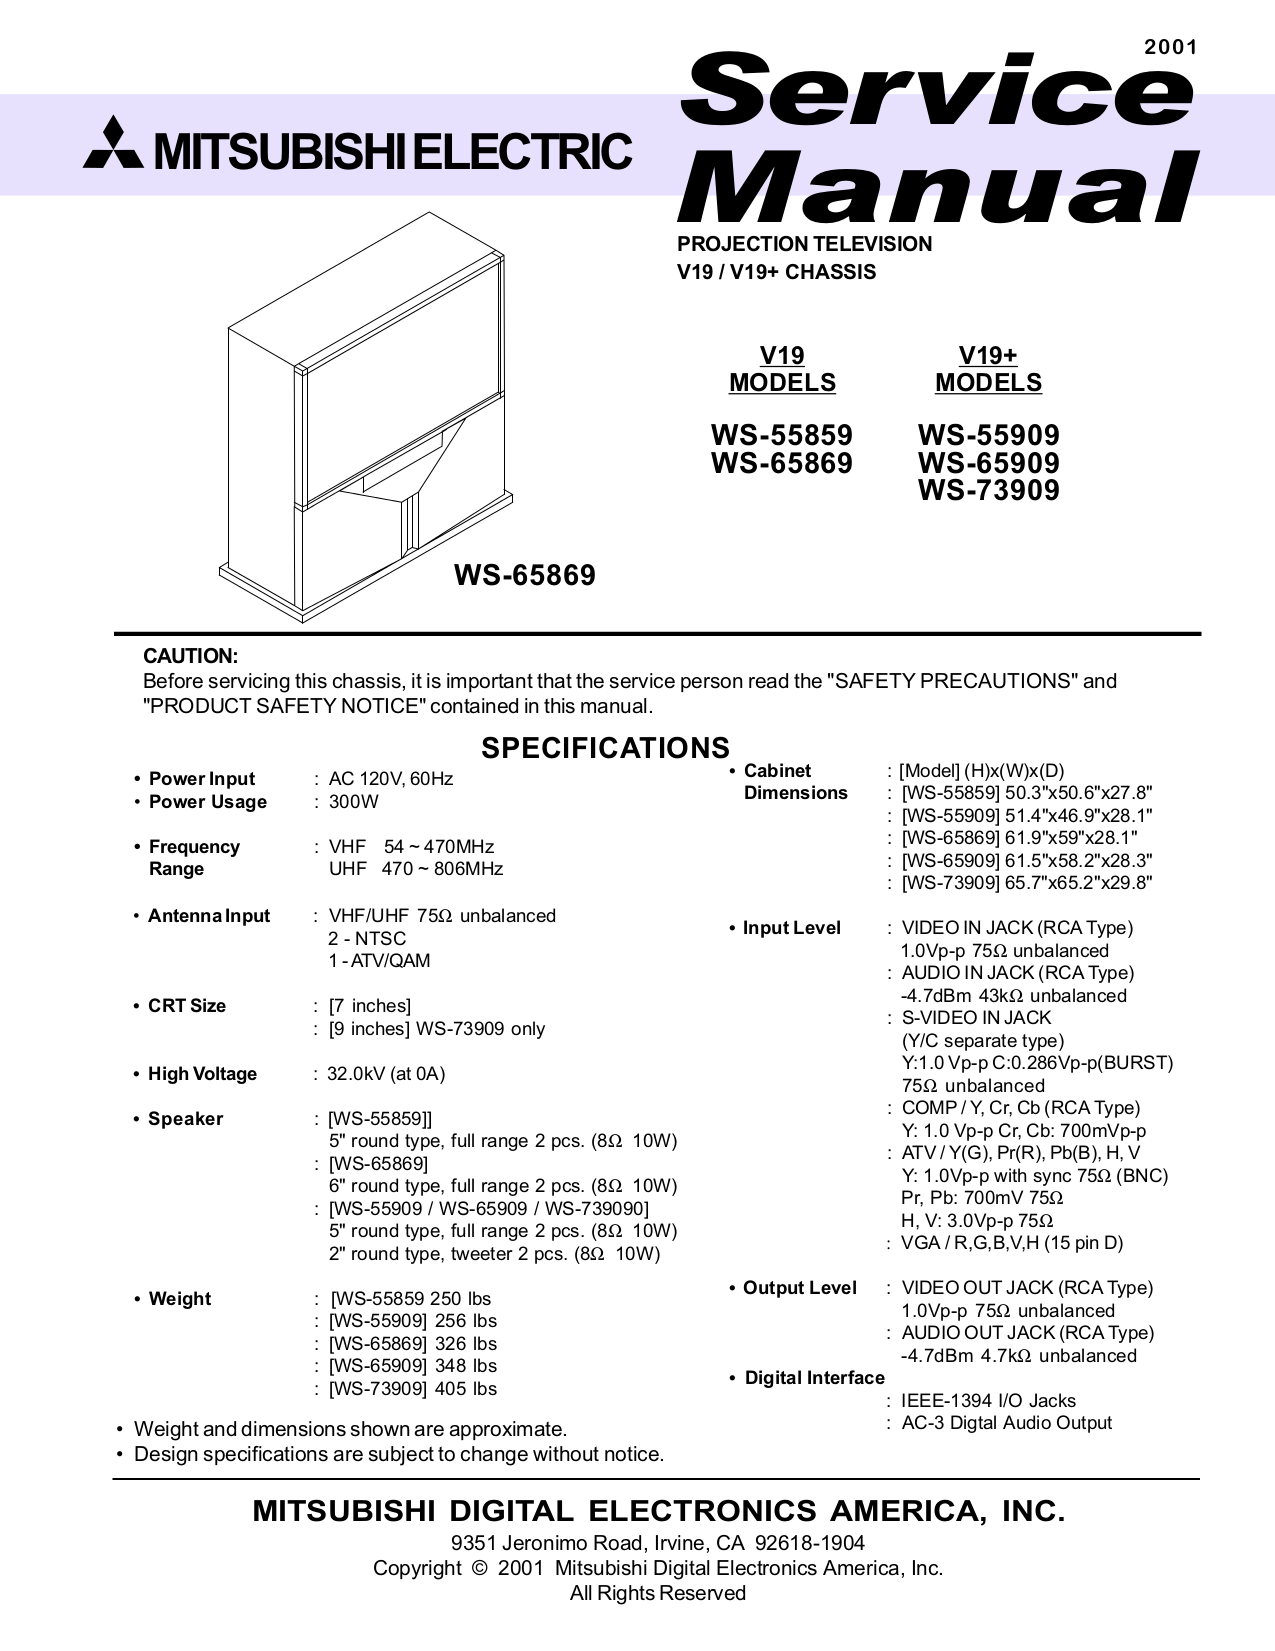 pdf for Mitsubishi TV WS-55859 manual